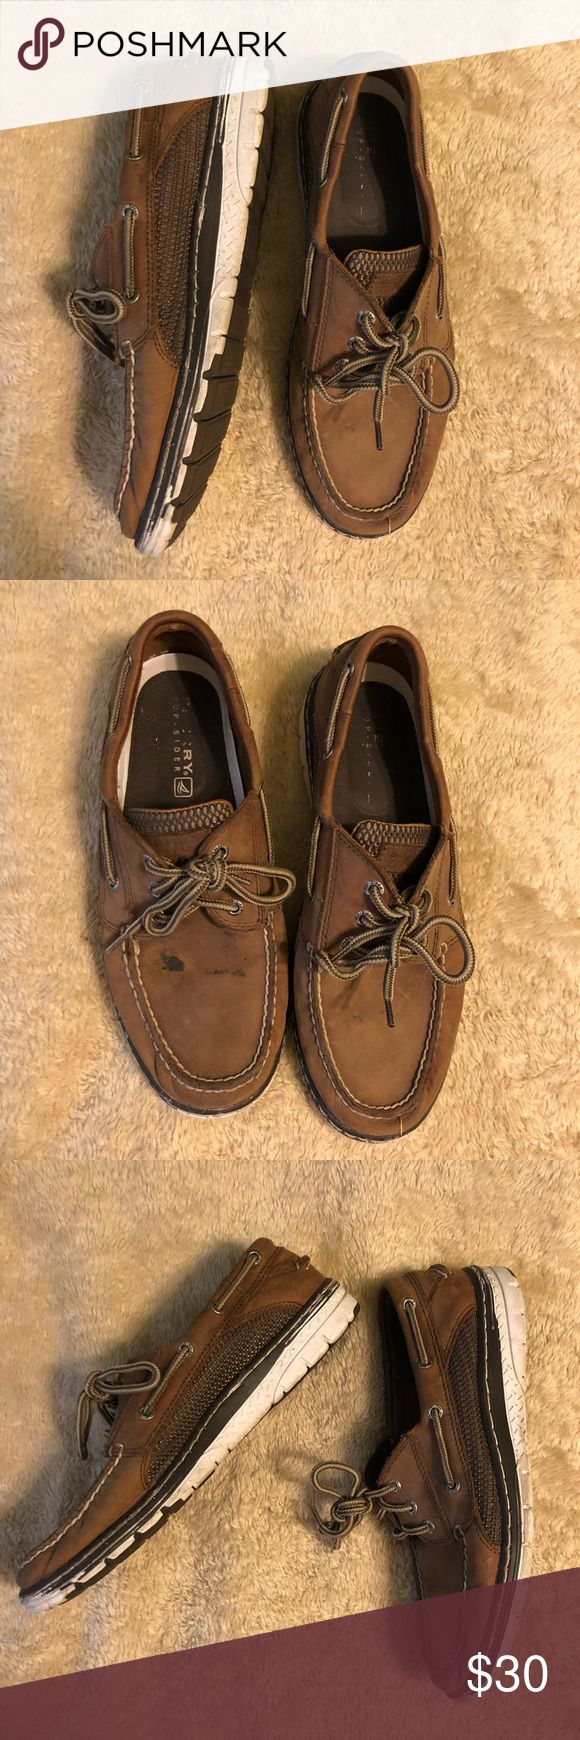 Sperry Top Siders Men's Sperry Top Siders, fairly worn as shown in pictures and reflected in the price. I have not tried to wash them though so the mark on the top of the shoe may be able to come off! Sperry Top-Sider Shoes Boat Shoes